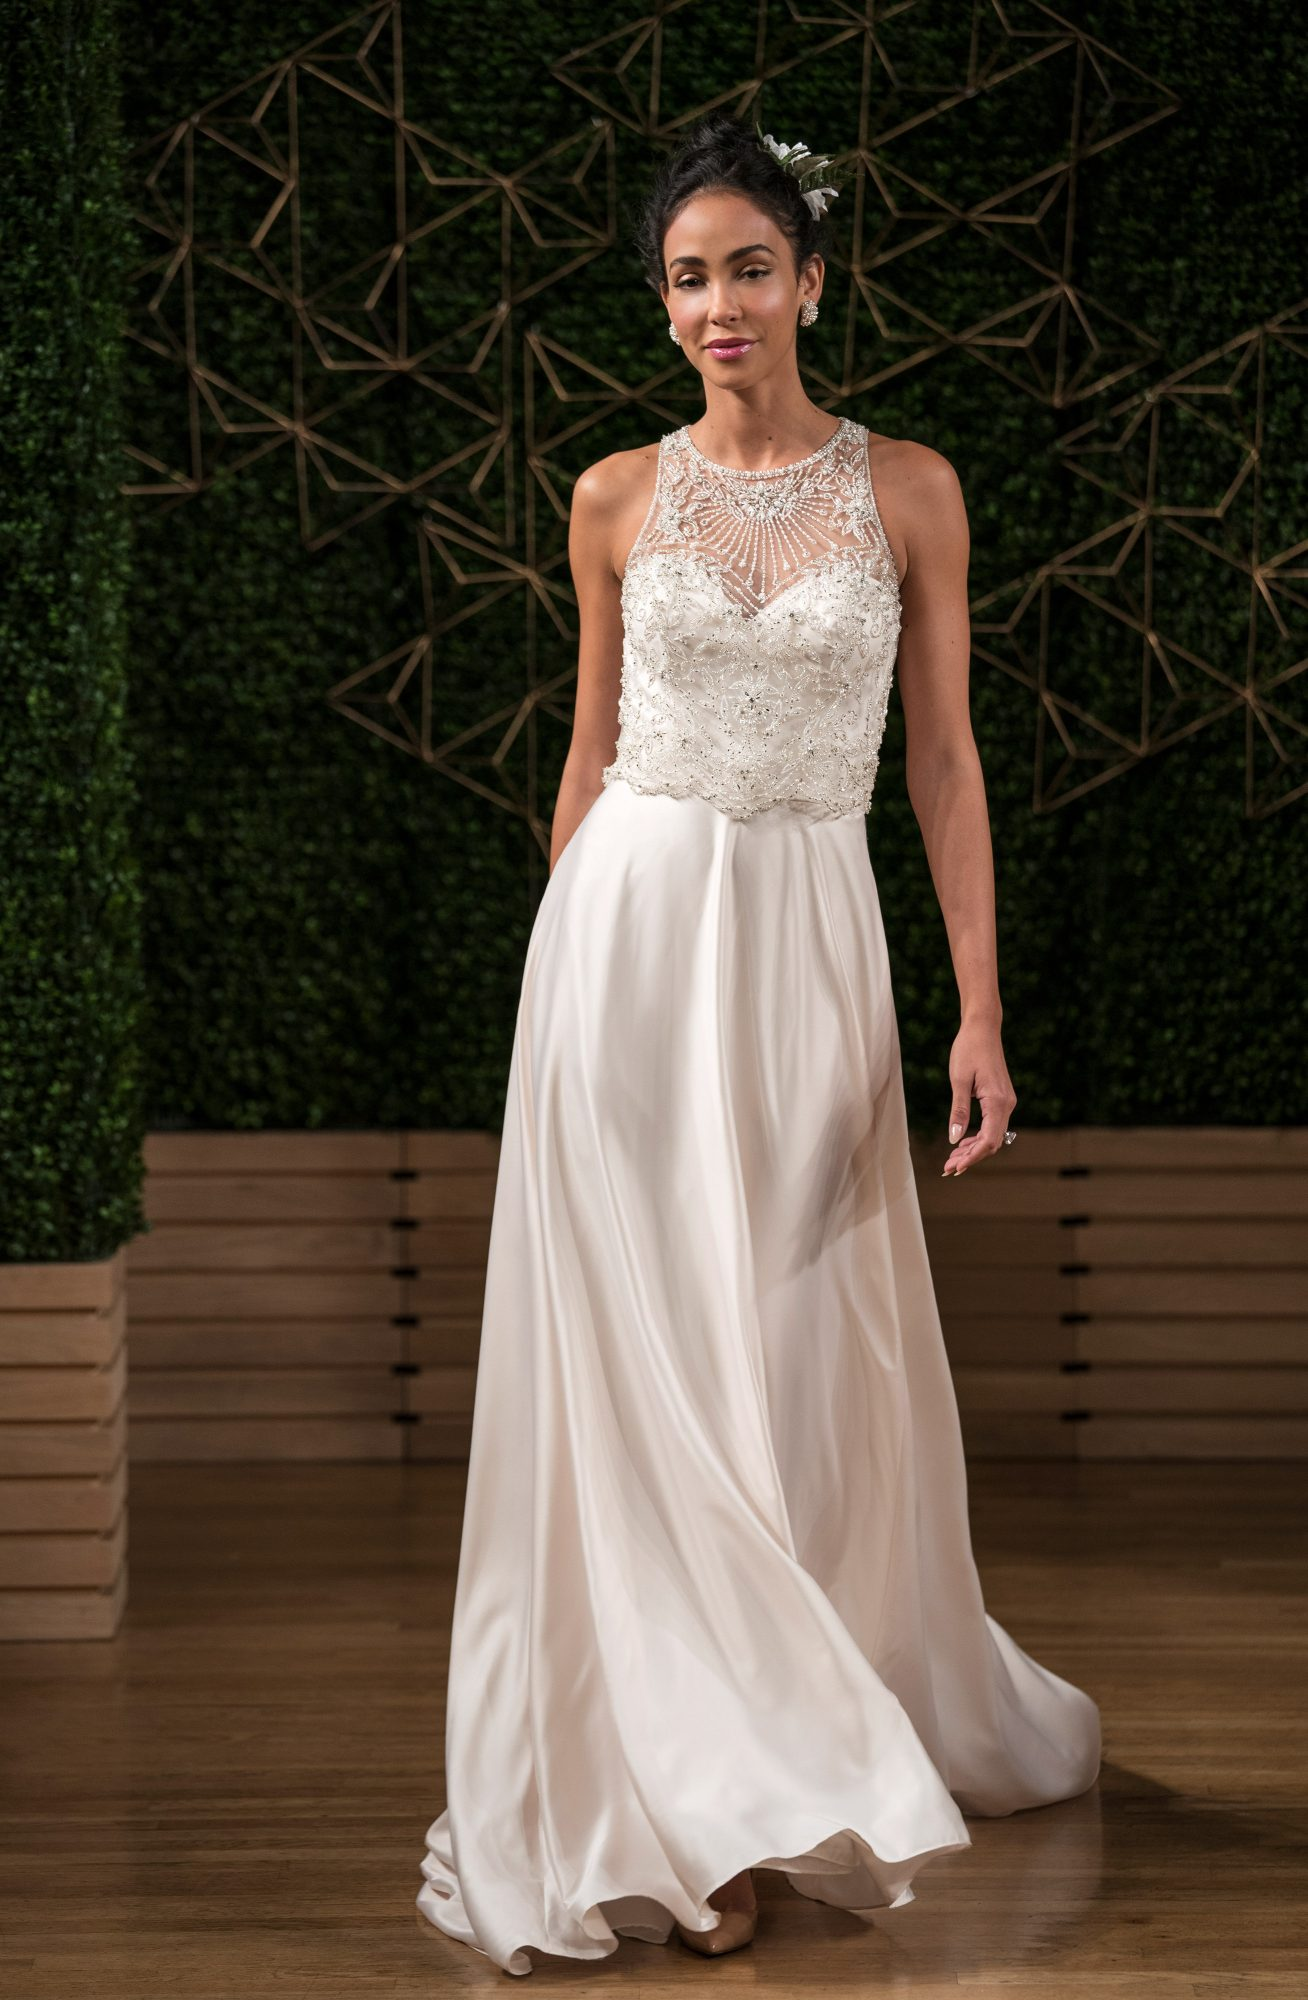 maggie sottero wedding dress fall 2018 a-line embellished sleeveless